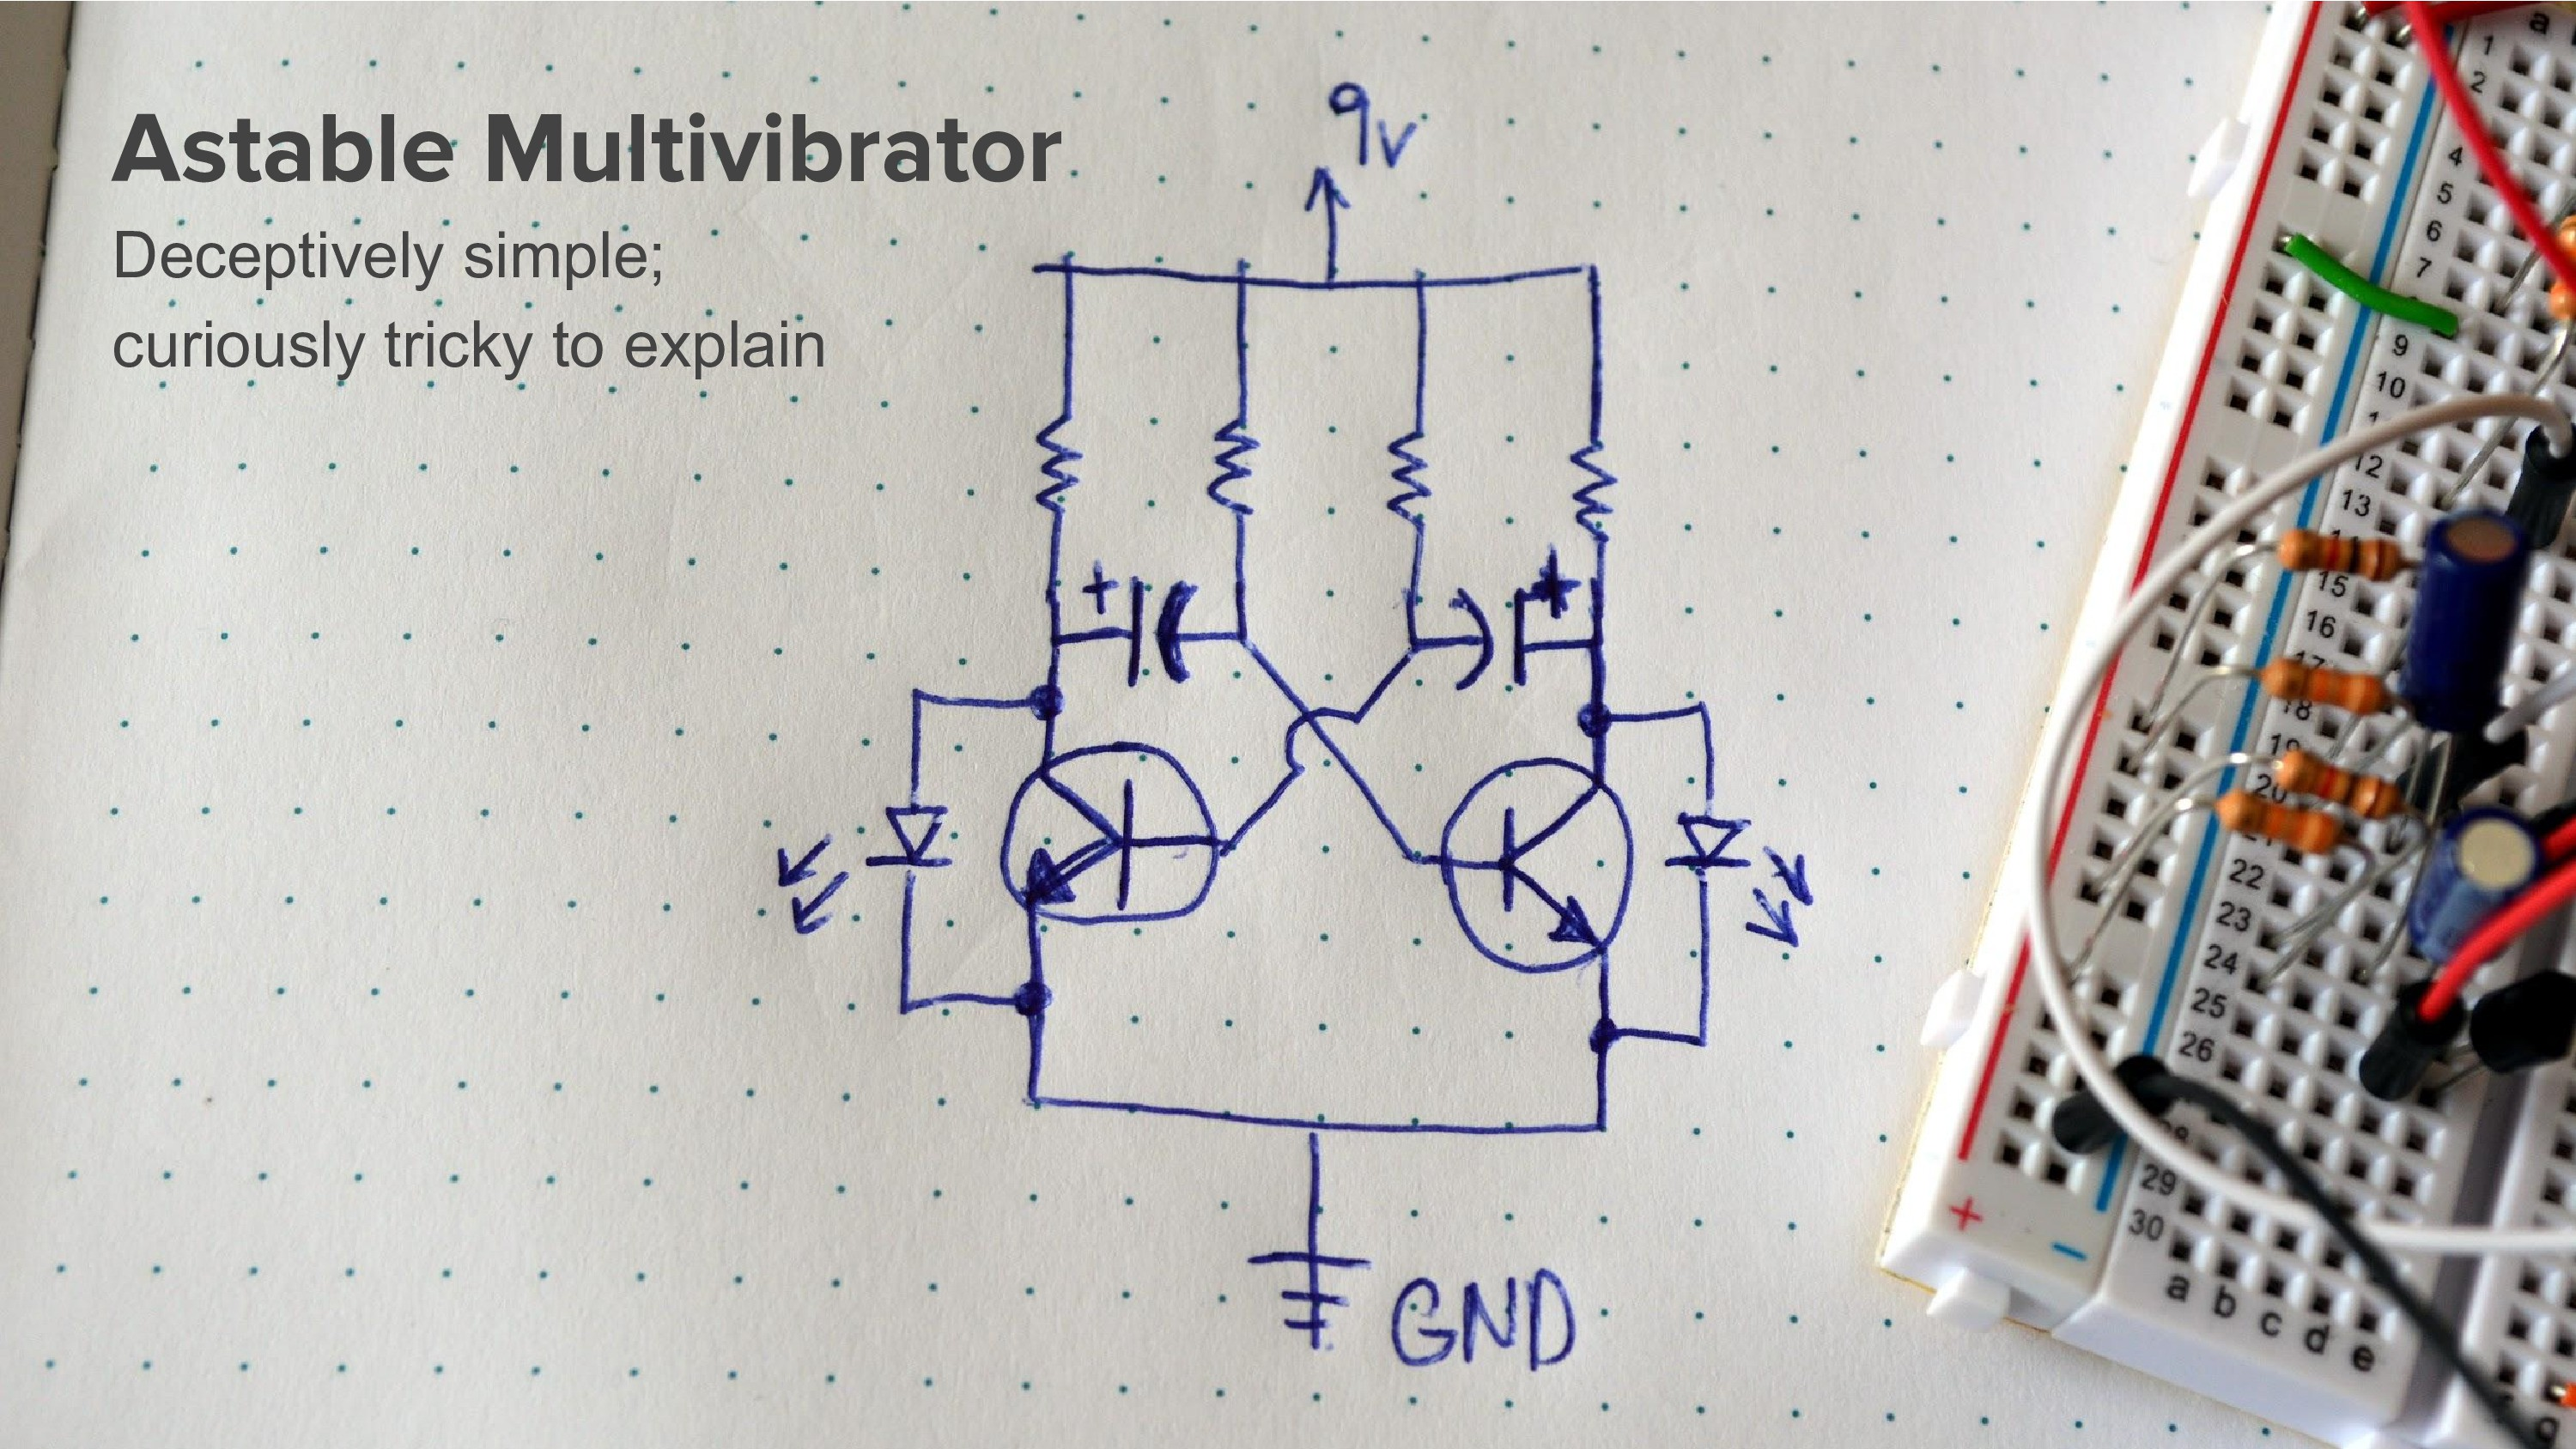 Uncon Talk Discrete D Flip Flops This Is A Diode Transistor Logic Dtl Nand Gate Circuit Using Bipolar I Started By Building The Classic Astable Multi Vibrator Which Uses Pair Of Transistors Each With An Rc Time Constant To Alternately Blink Leds